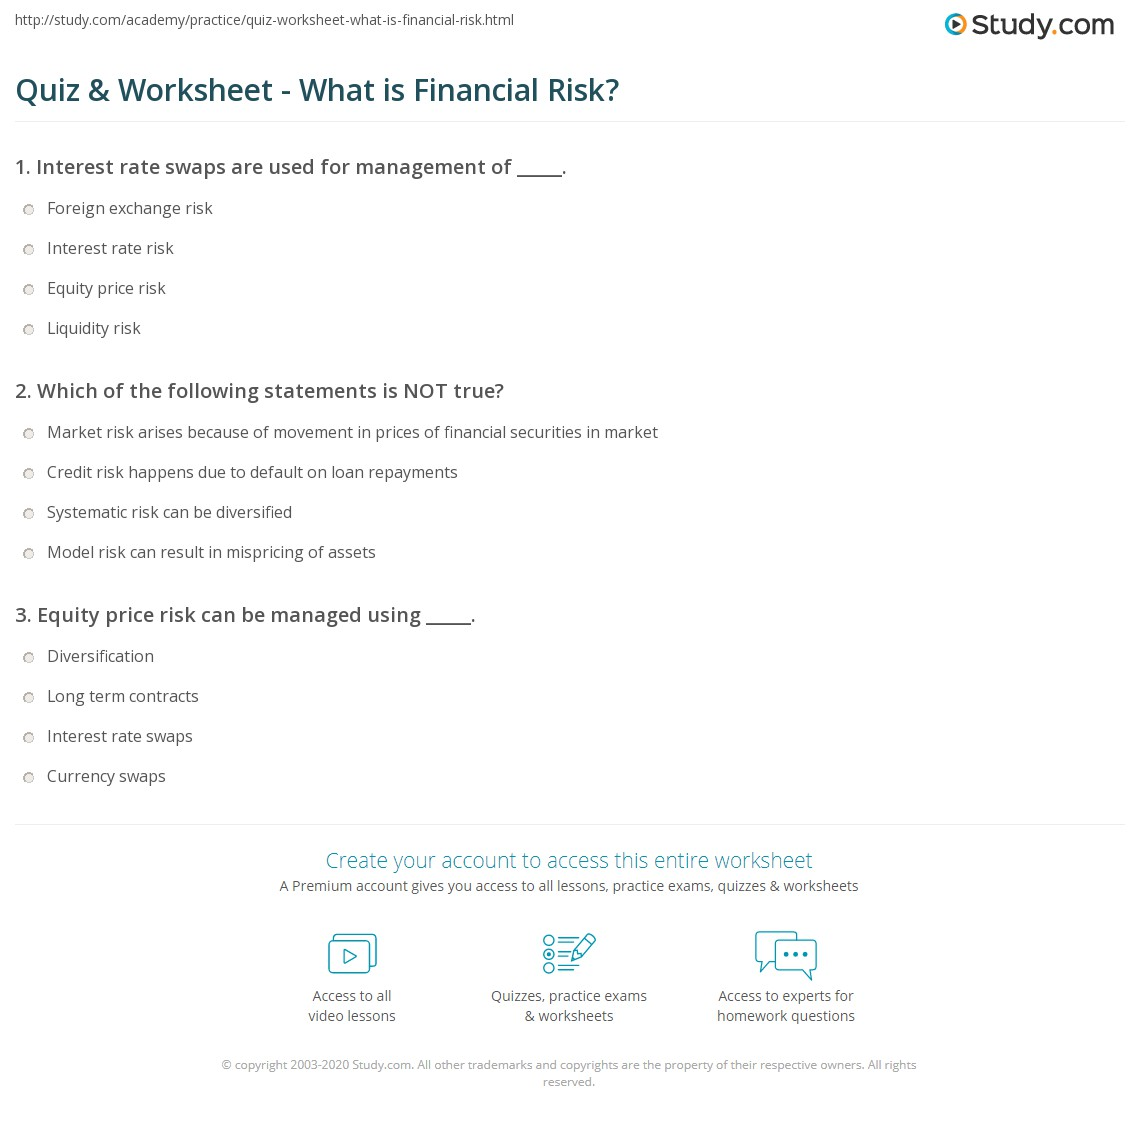 Quiz & Worksheet - What is Financial Risk? | Study com